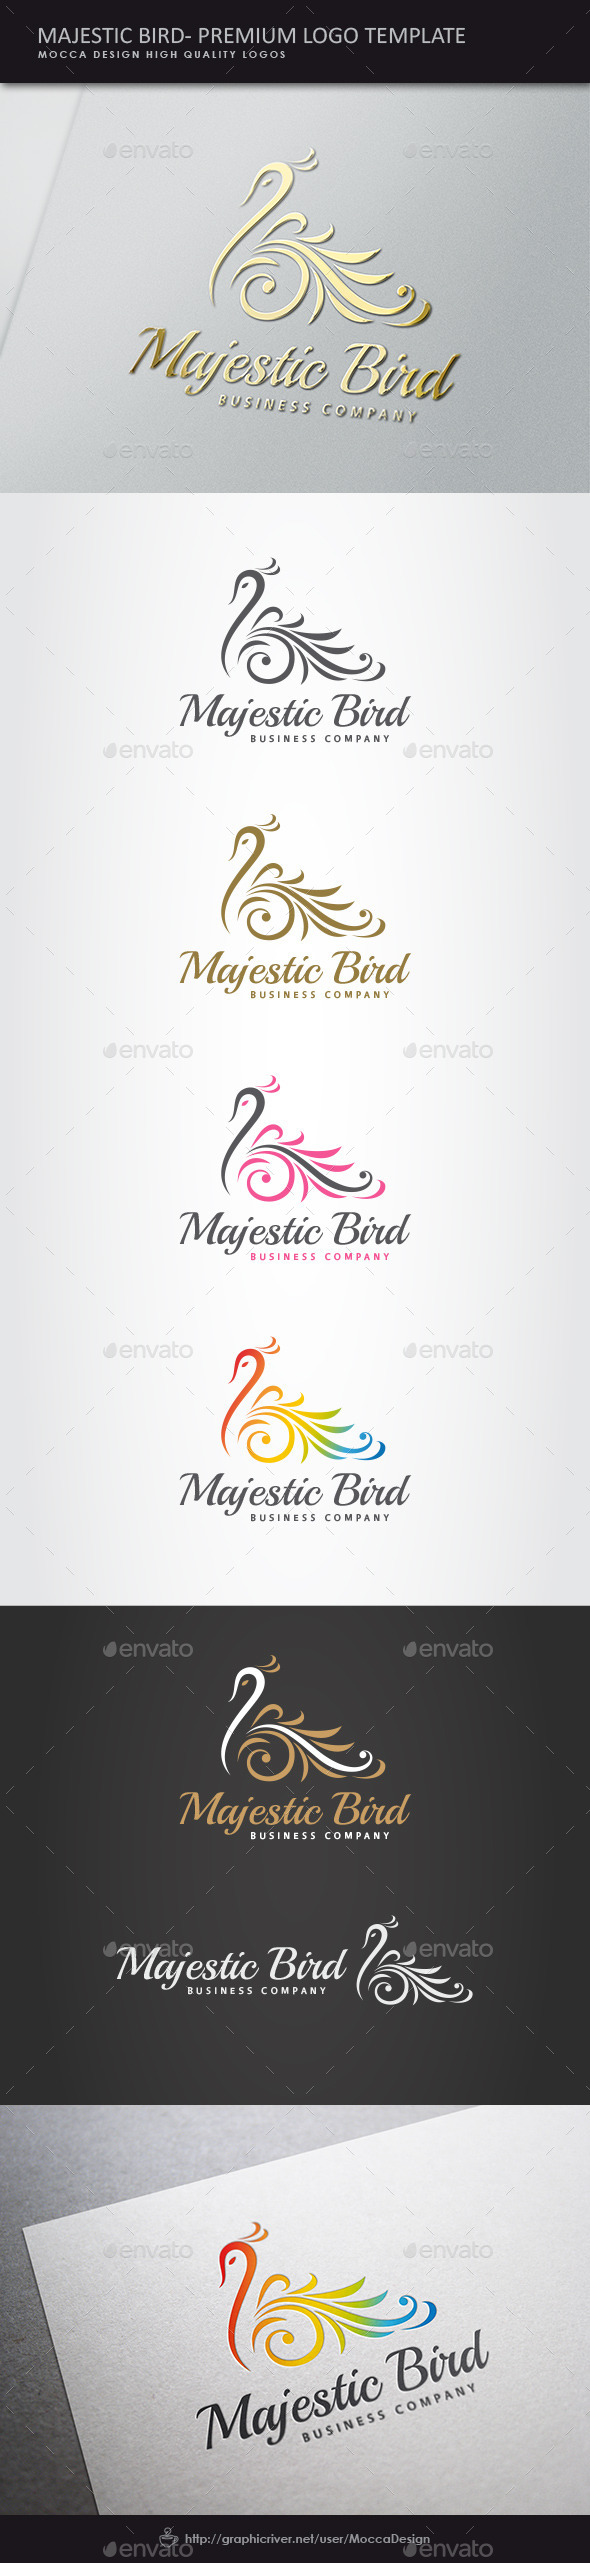 GraphicRiver Majestic Bird Logo 10156150